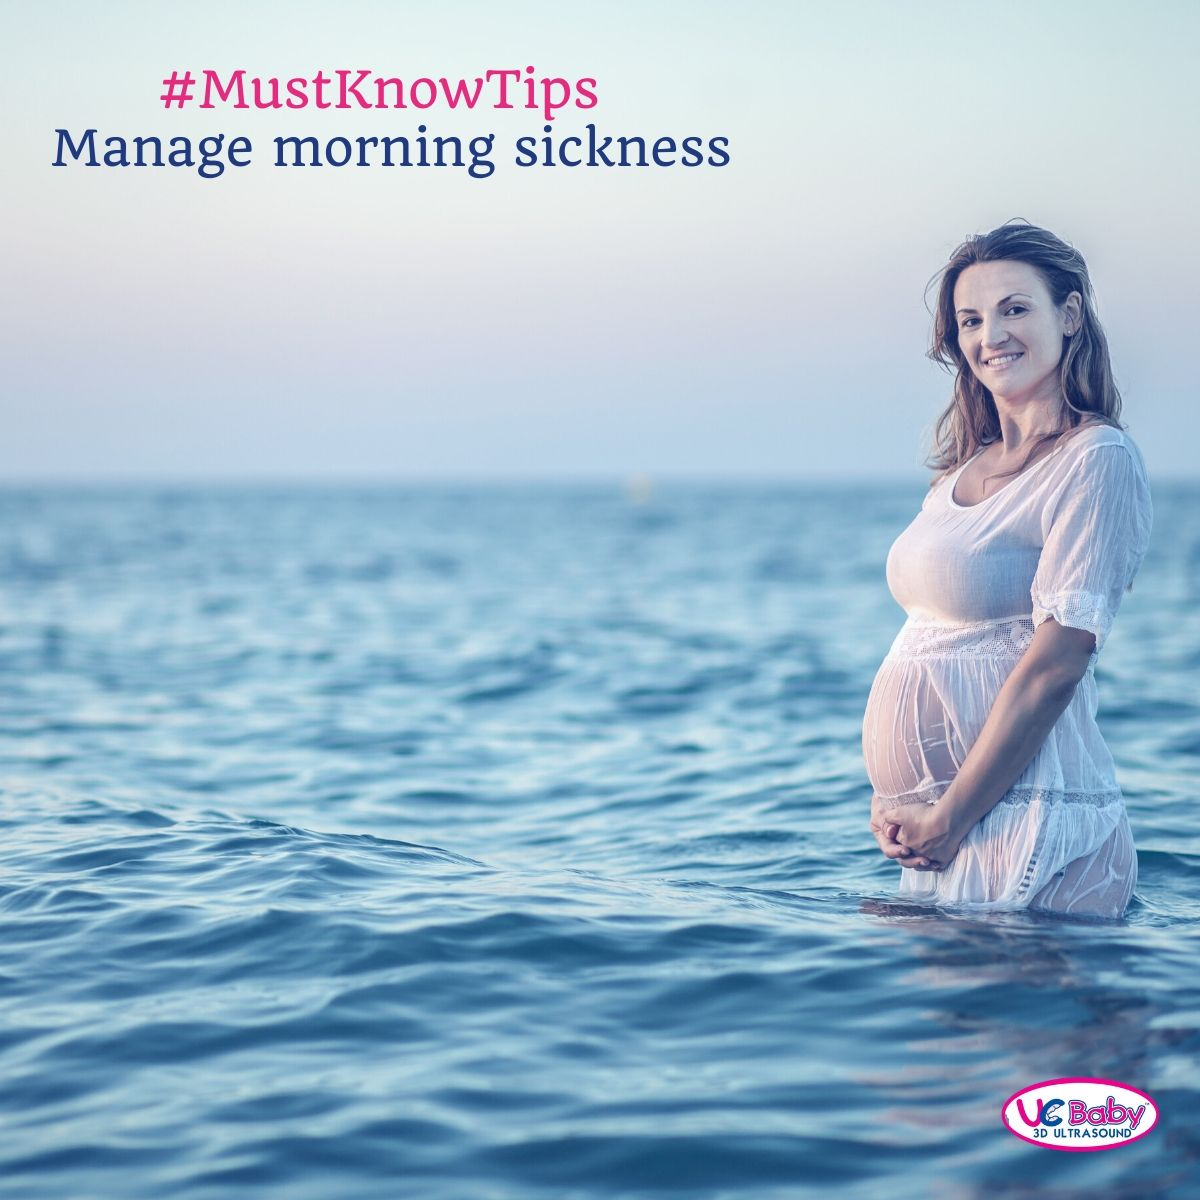 #MustKnowTips (1) - Manage Morning Sickness